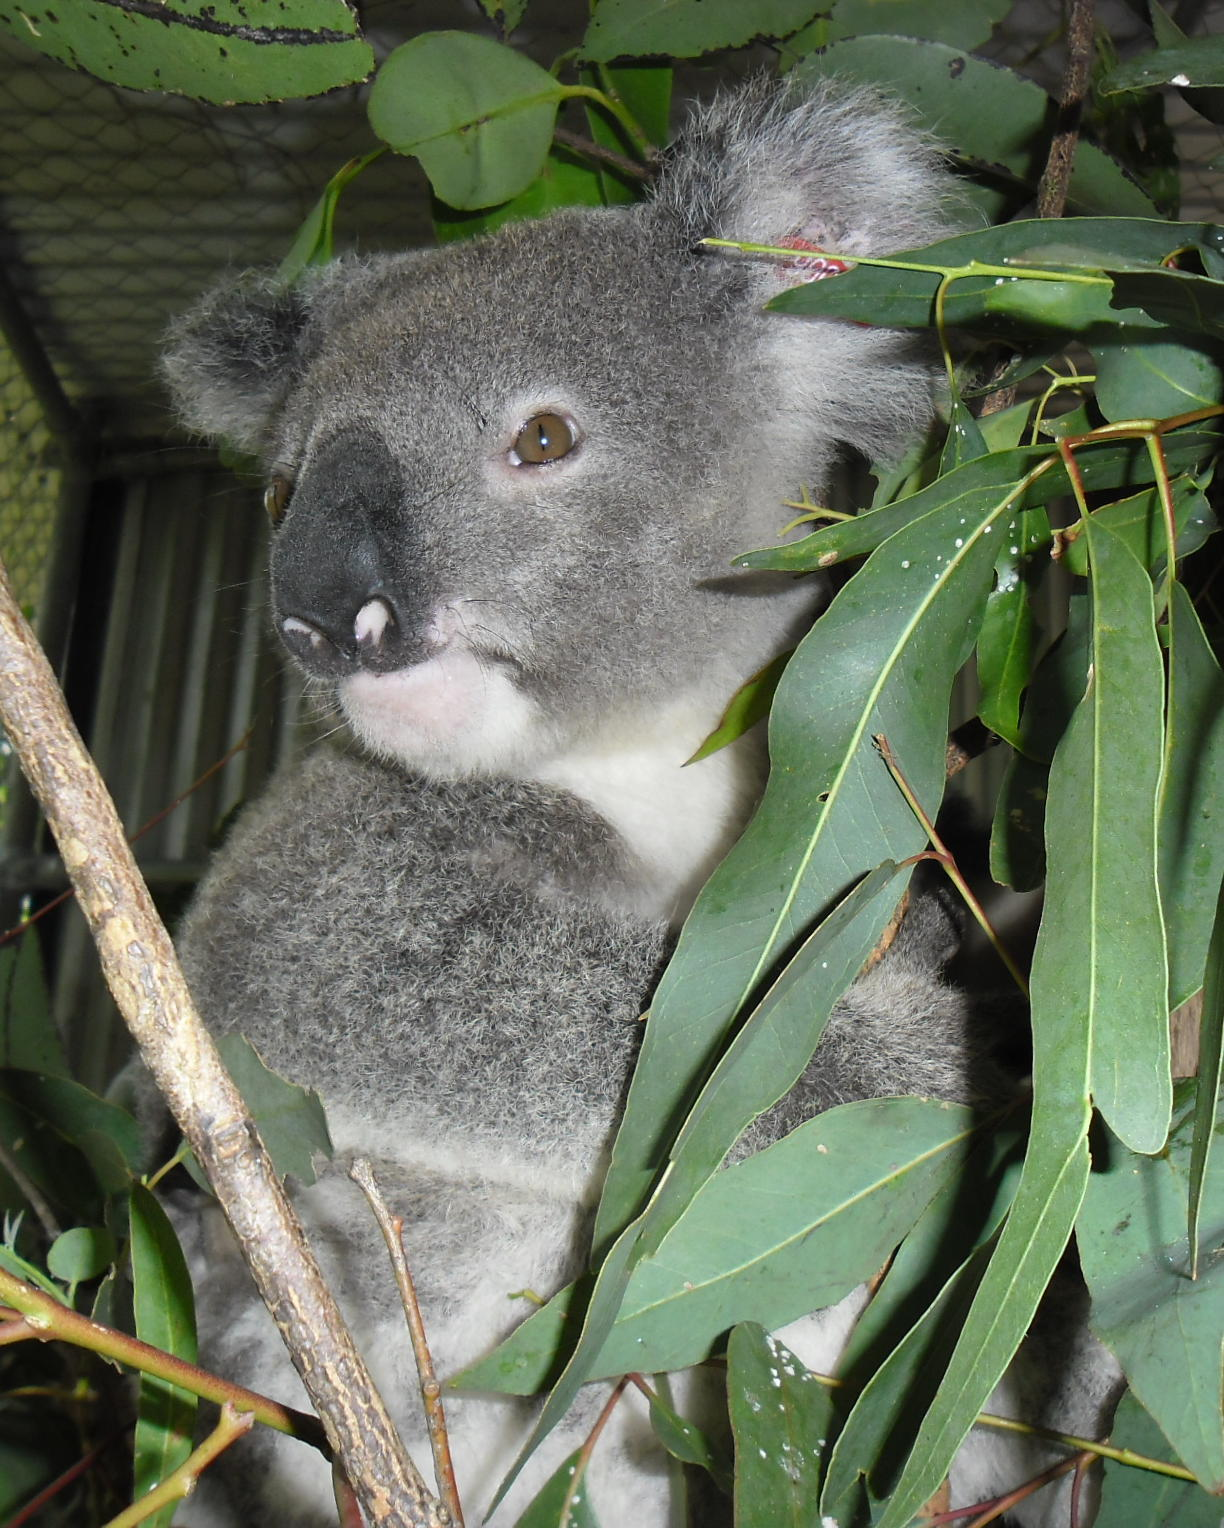 Image courtesy of Friends of the Koala